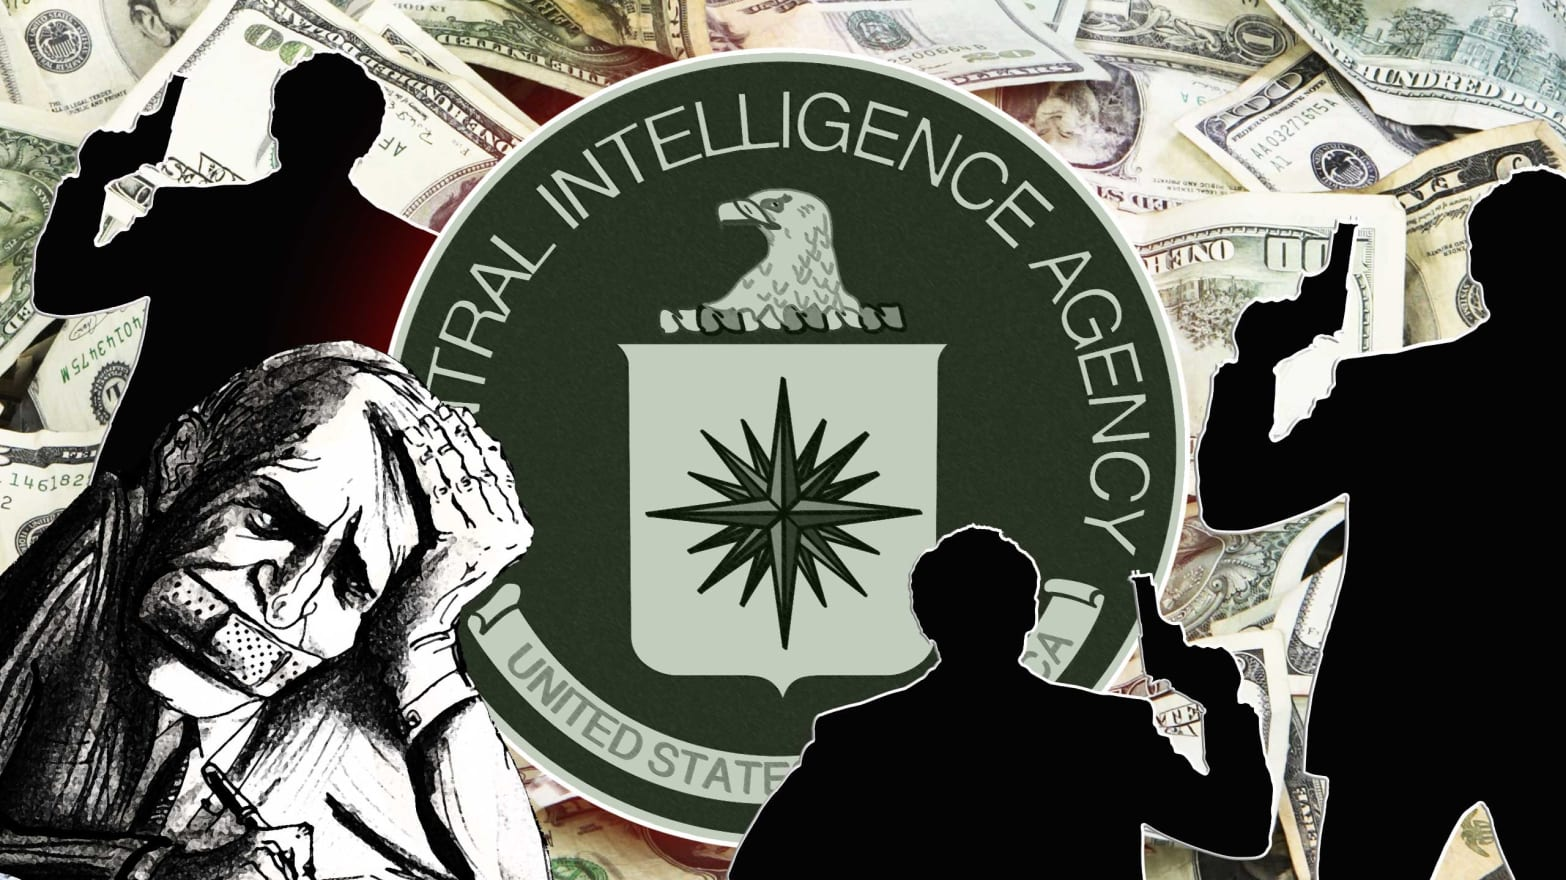 Spy: CIA Kept Me From My Soulmate